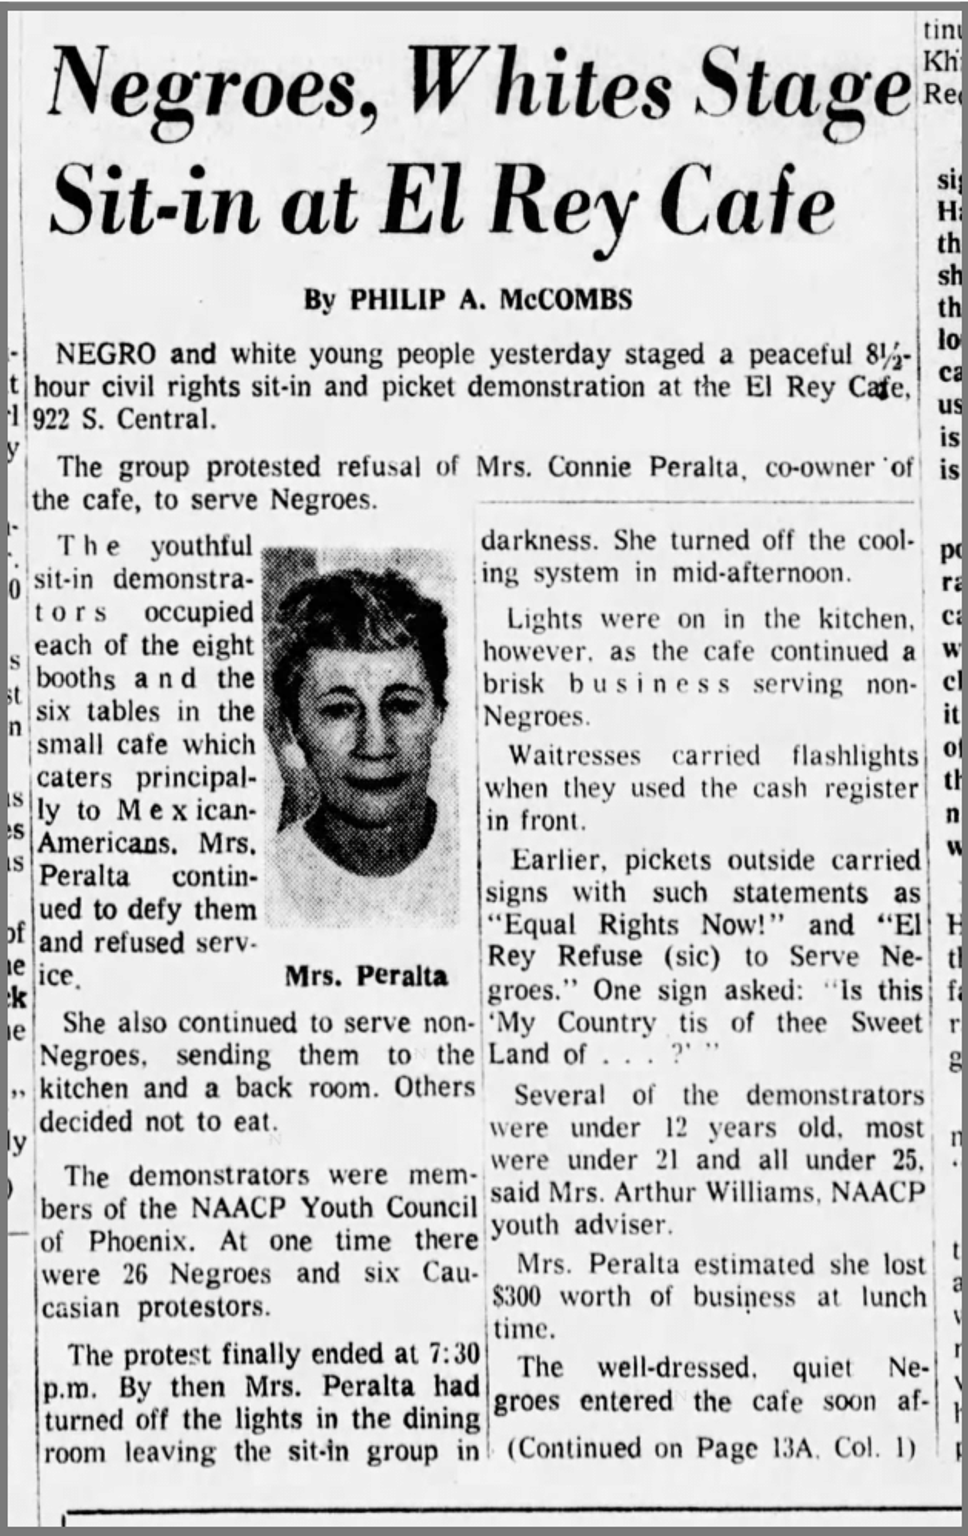 A clipping from The Arizona Republic on Sept. 1, 1963 of a sit in at El Rey Cafe.